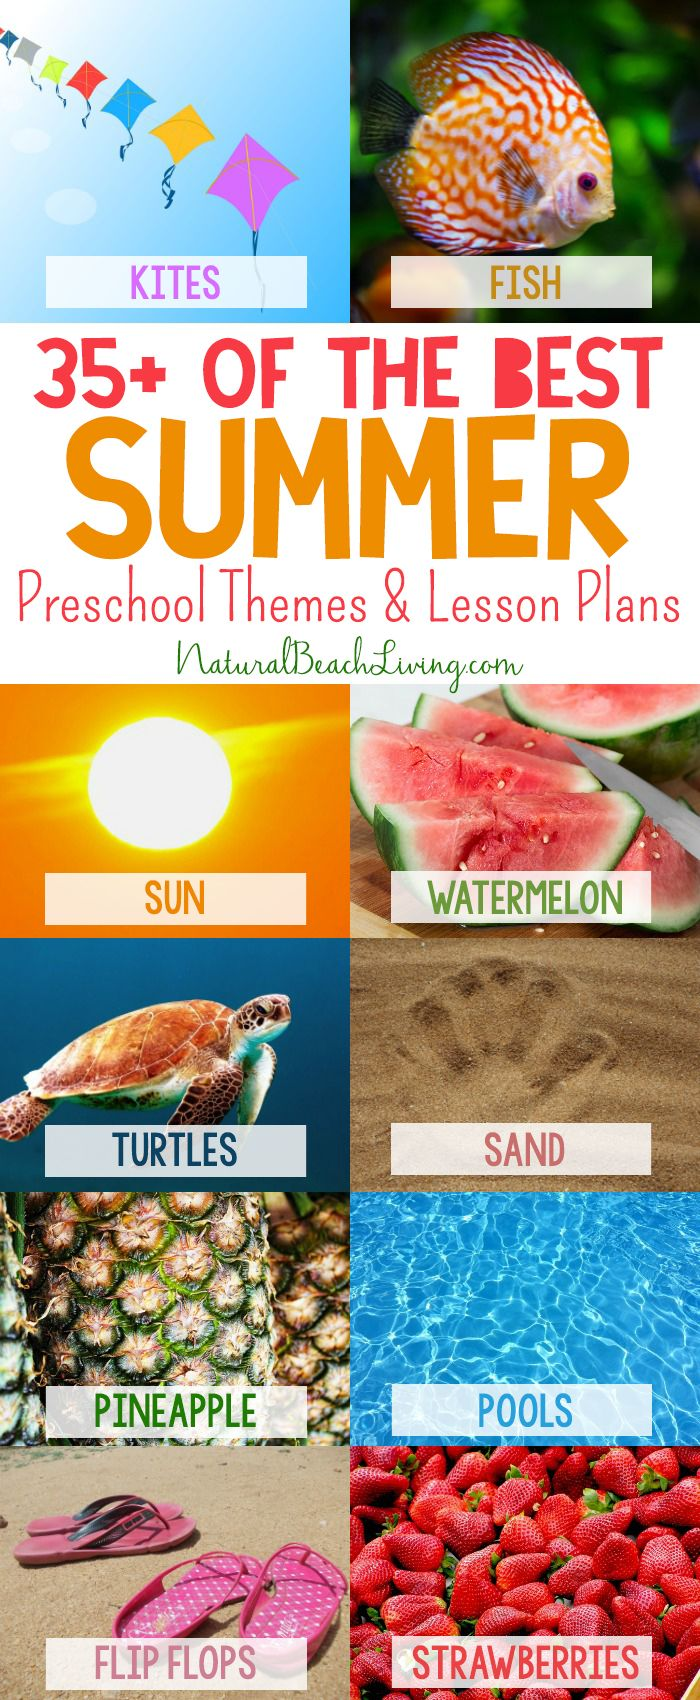 35 Best Summer Preschool Themes And Activities Free Printables Lessons Ideas For The Camp Beach Ocean Under Sea